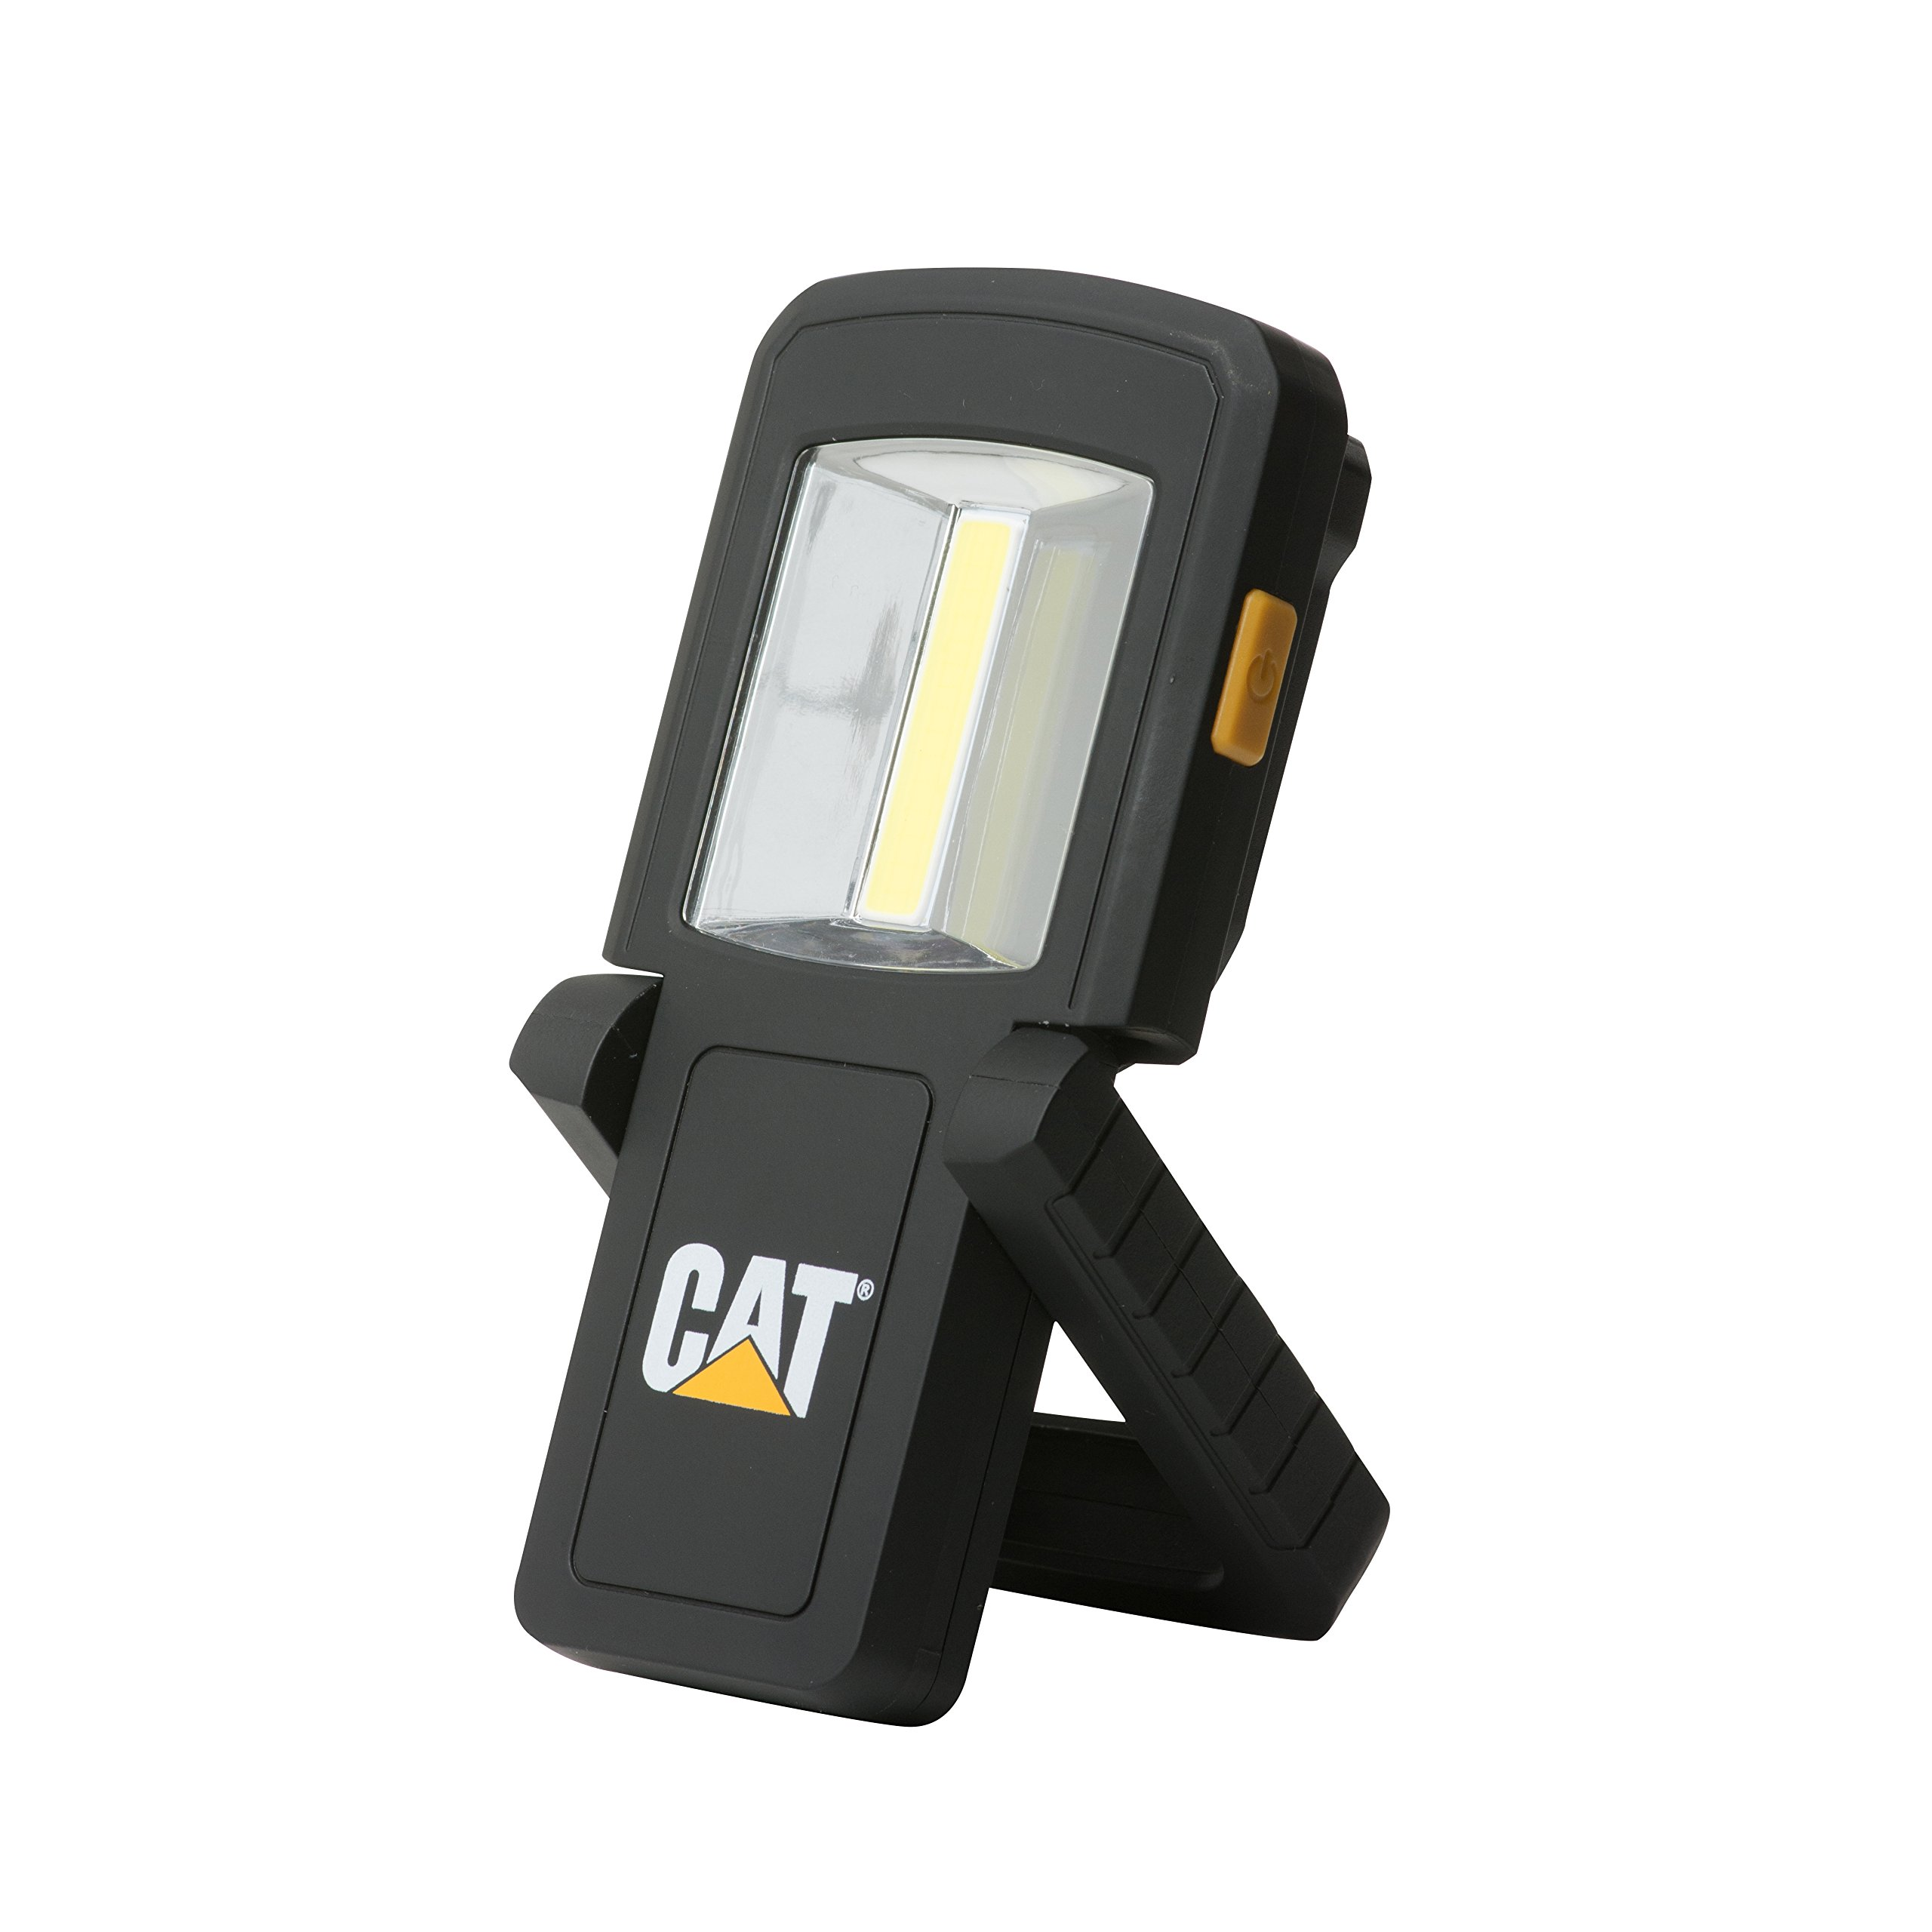 Cat CT3510 Dual Beam Work Light – 165 Lumen COB LED Front Flood Panel, 50 Lumen Top Beam Hands-Free Light, Black